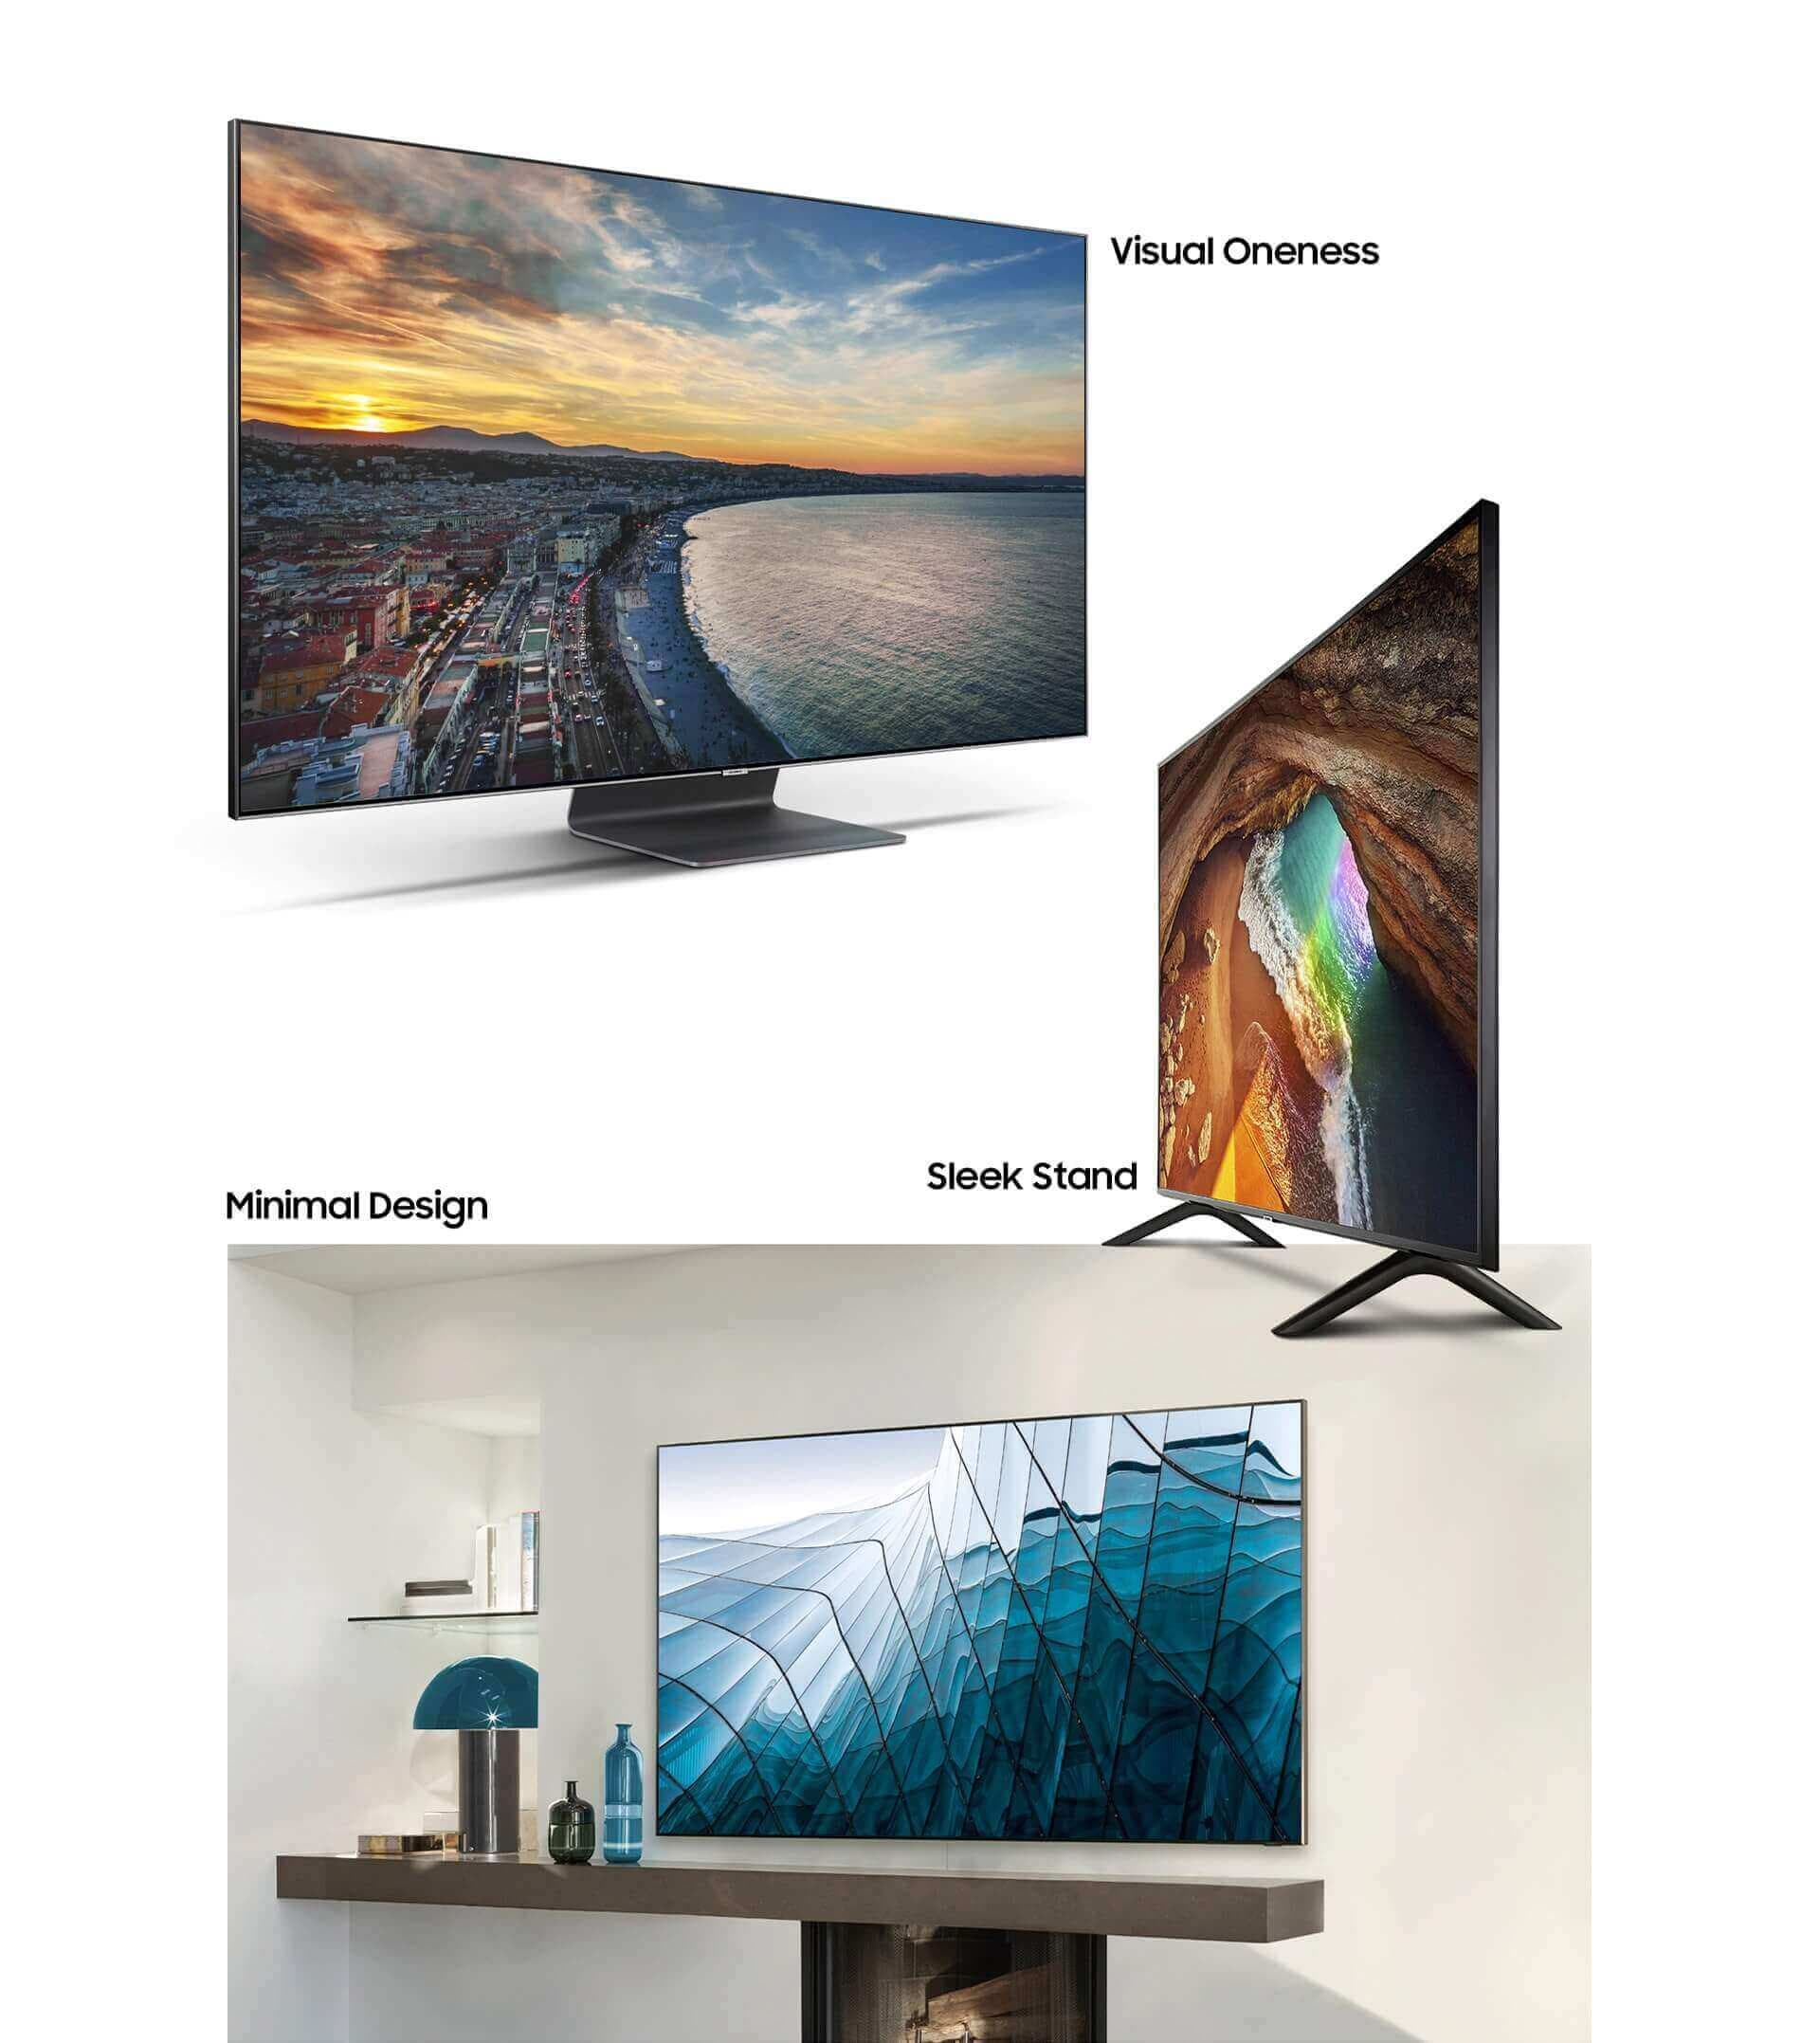 A showcasing of multiple 2019 samsung QLED TVs, featuring a left-dynamic angle of the 2019 Q90R with visual oneness, a right-dynamic angle of the 2019 Q60R image with sleek stand design, and an interior image with a Q900R mounted on a wall in a living room with its minimal design that fit right in the room.